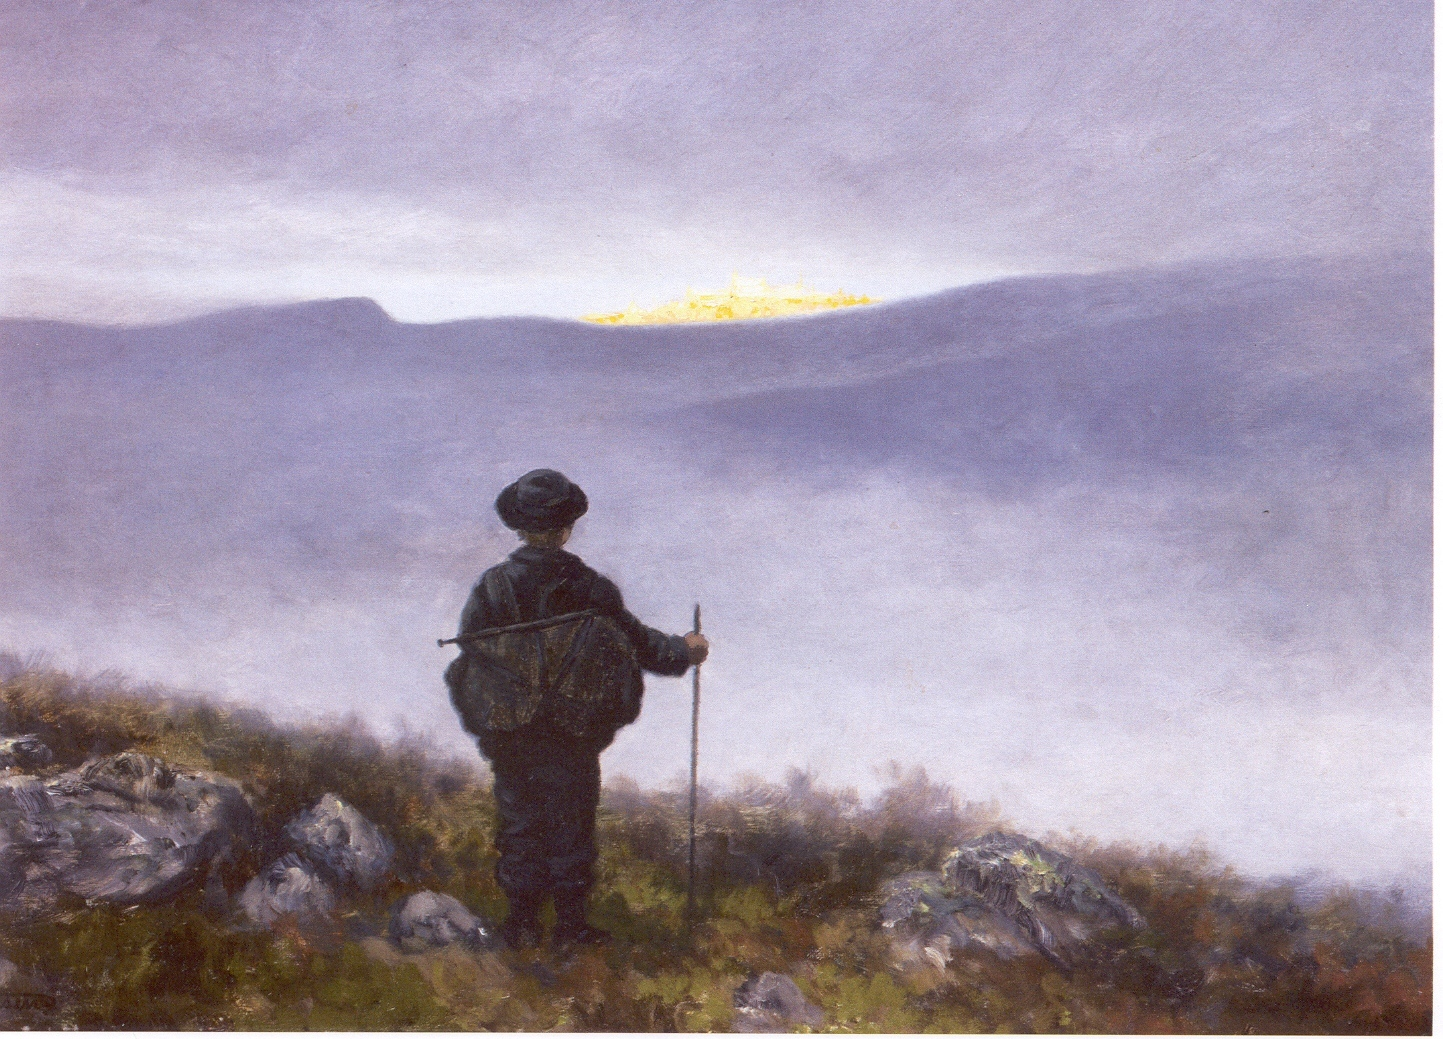 theodor_kittelsen_soria_moria_high_resolution_desktop_1443x1039_hd-wallpaper-1007422.jpg